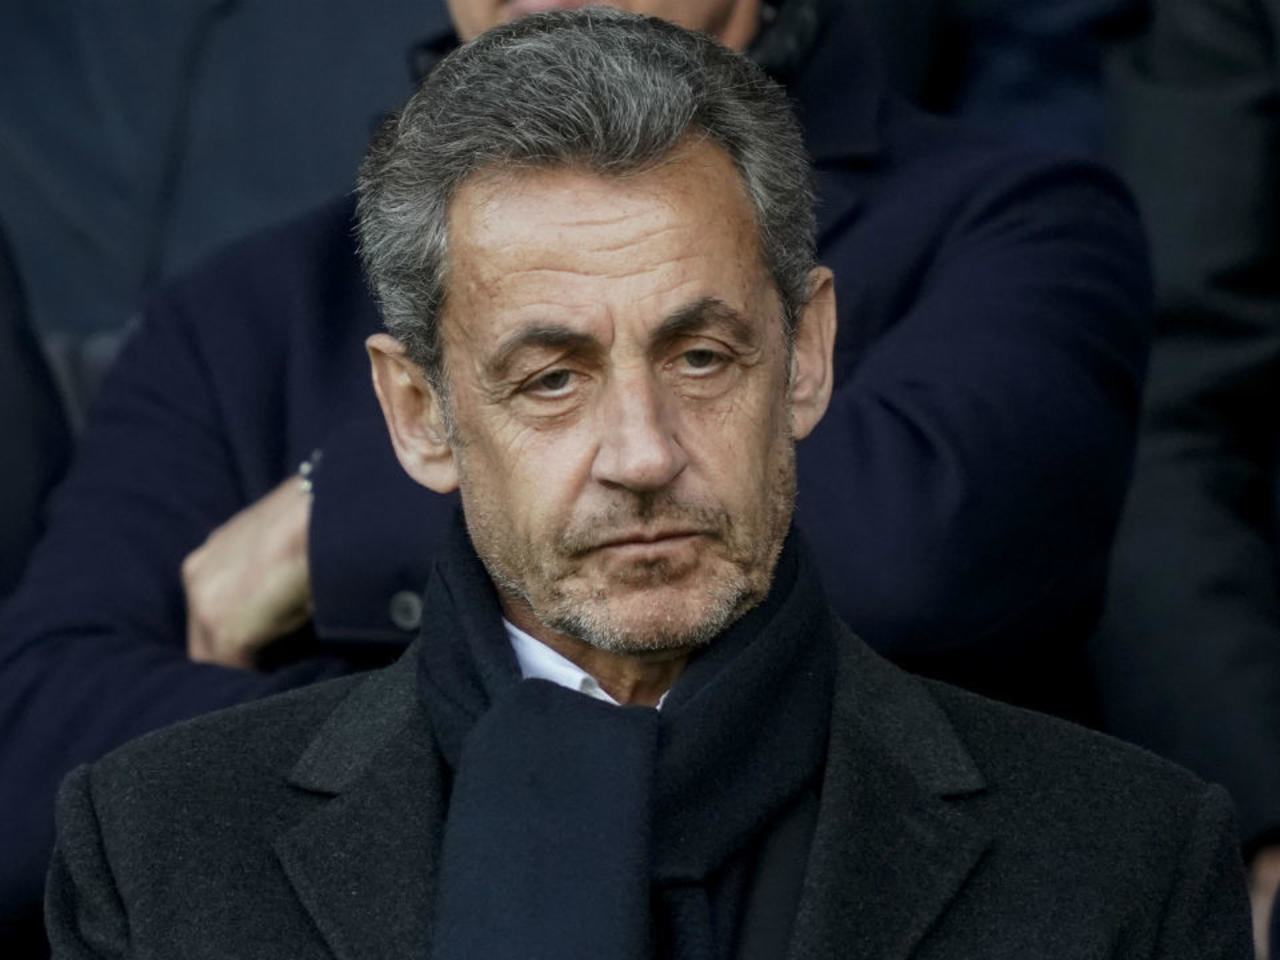 sarkozy - photo #7